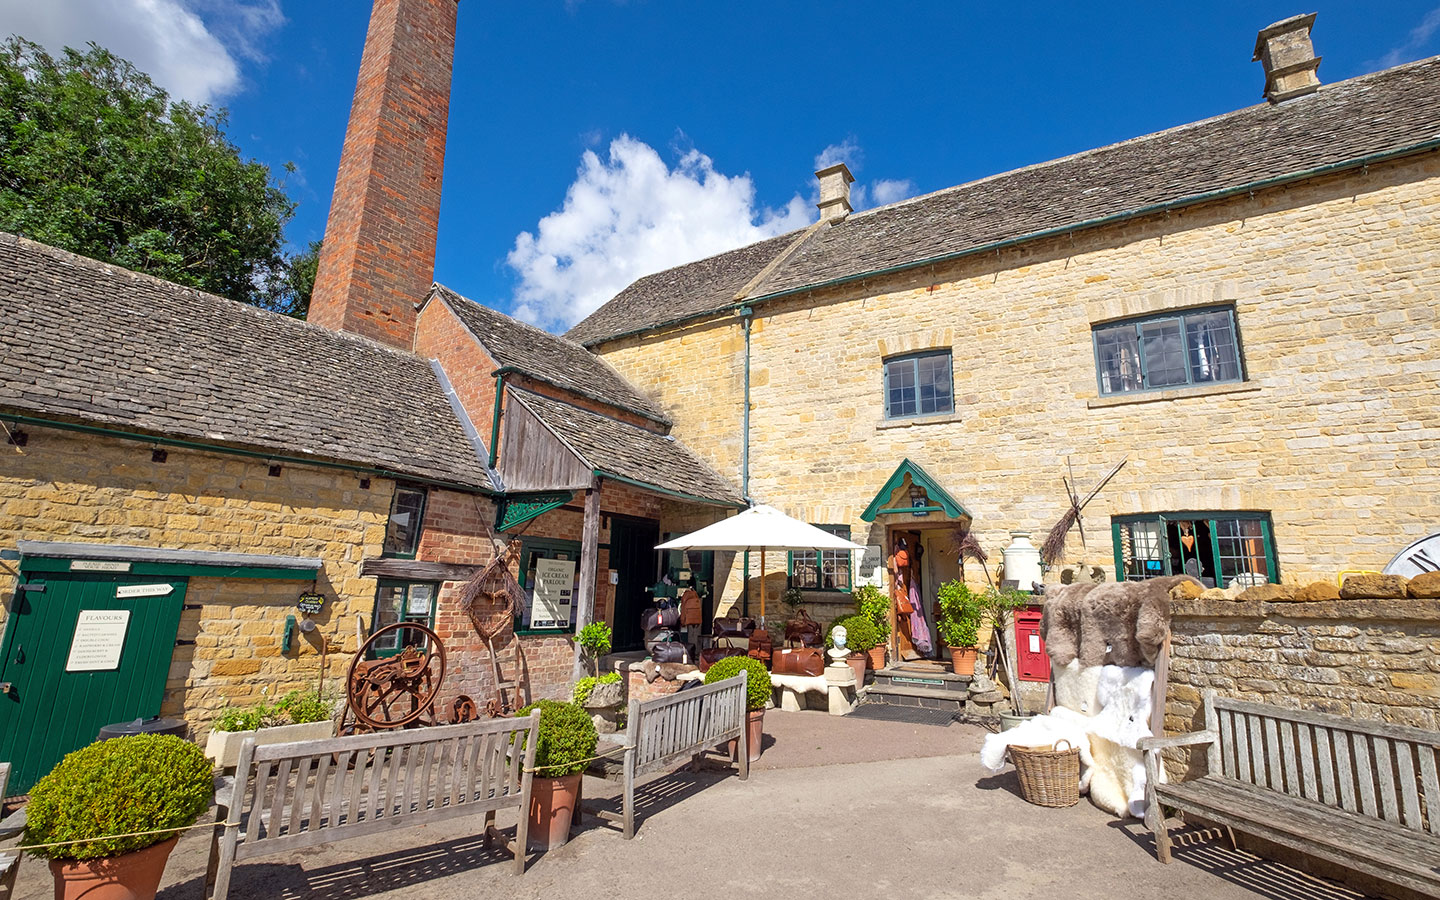 The Old Mill museum in Lower Slaughter